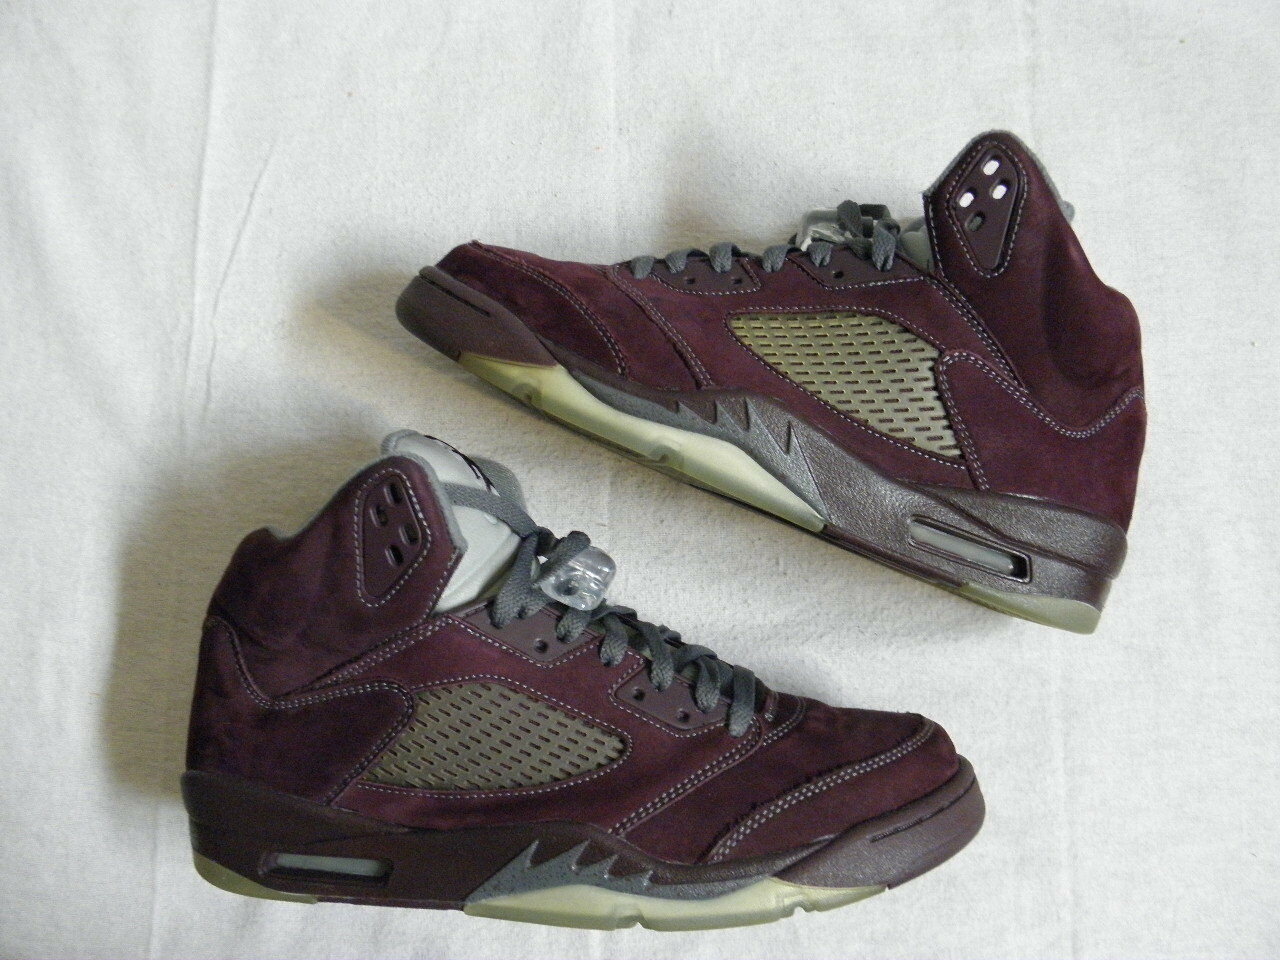 buy popular 46b2a f2c72 Nike Air Jordan V 5 Five Retro LS BURGUNDY size 10.5 VNDS laser vintage  original